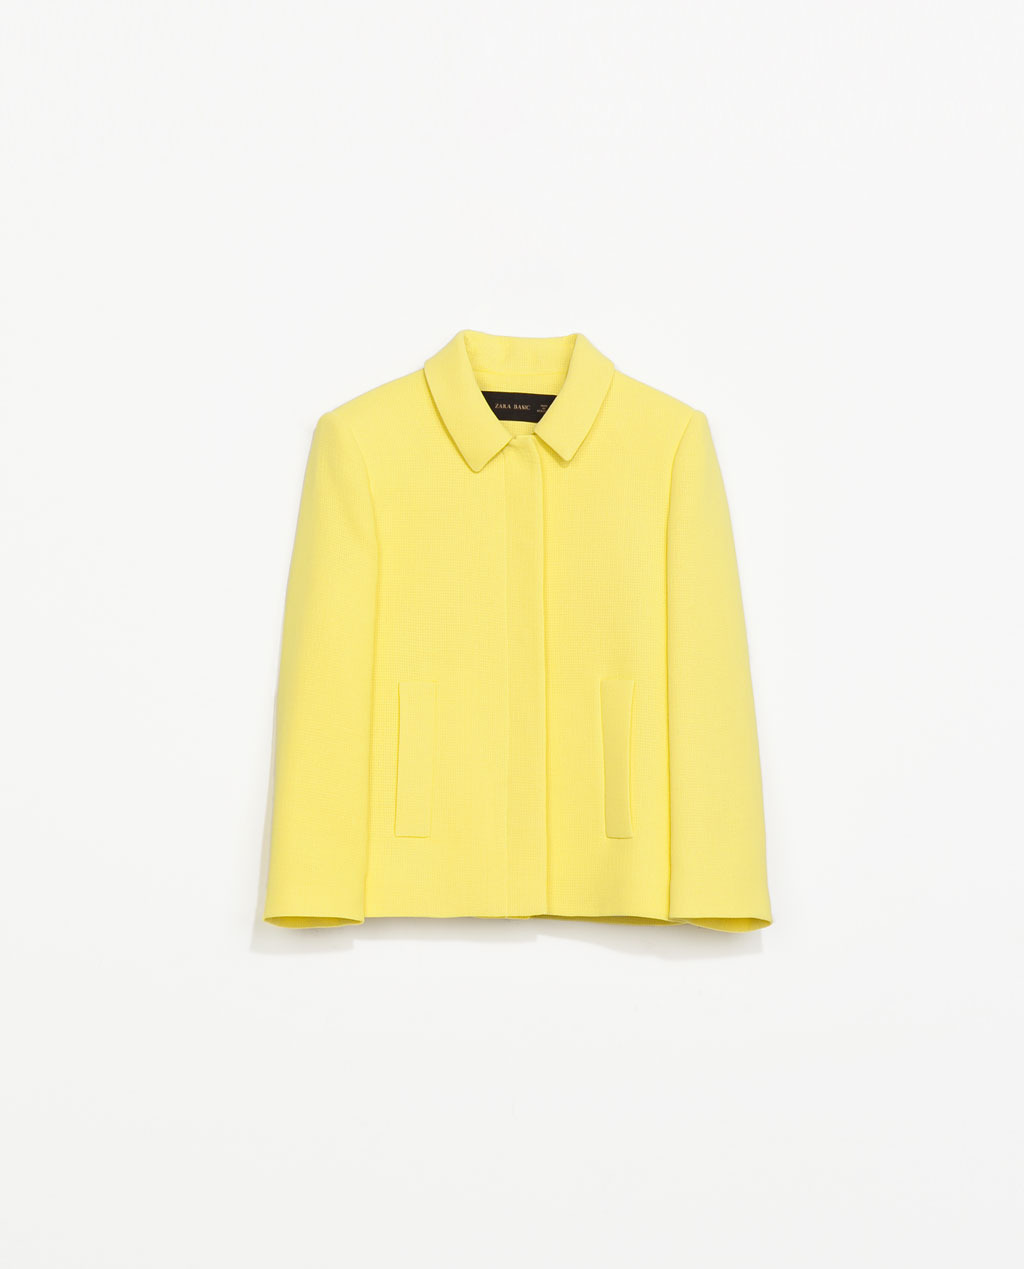 Structured Jacket - pattern: plain; style: boxy; predominant colour: yellow; occasions: casual, occasion, creative work; length: standard; fit: straight cut (boxy); collar: shirt collar/peter pan/zip with opening; sleeve length: 3/4 length; sleeve style: standard; collar break: high/illusion of break when open; pattern type: fabric; texture group: woven light midweight; trends: hot brights; season: s/s 2014